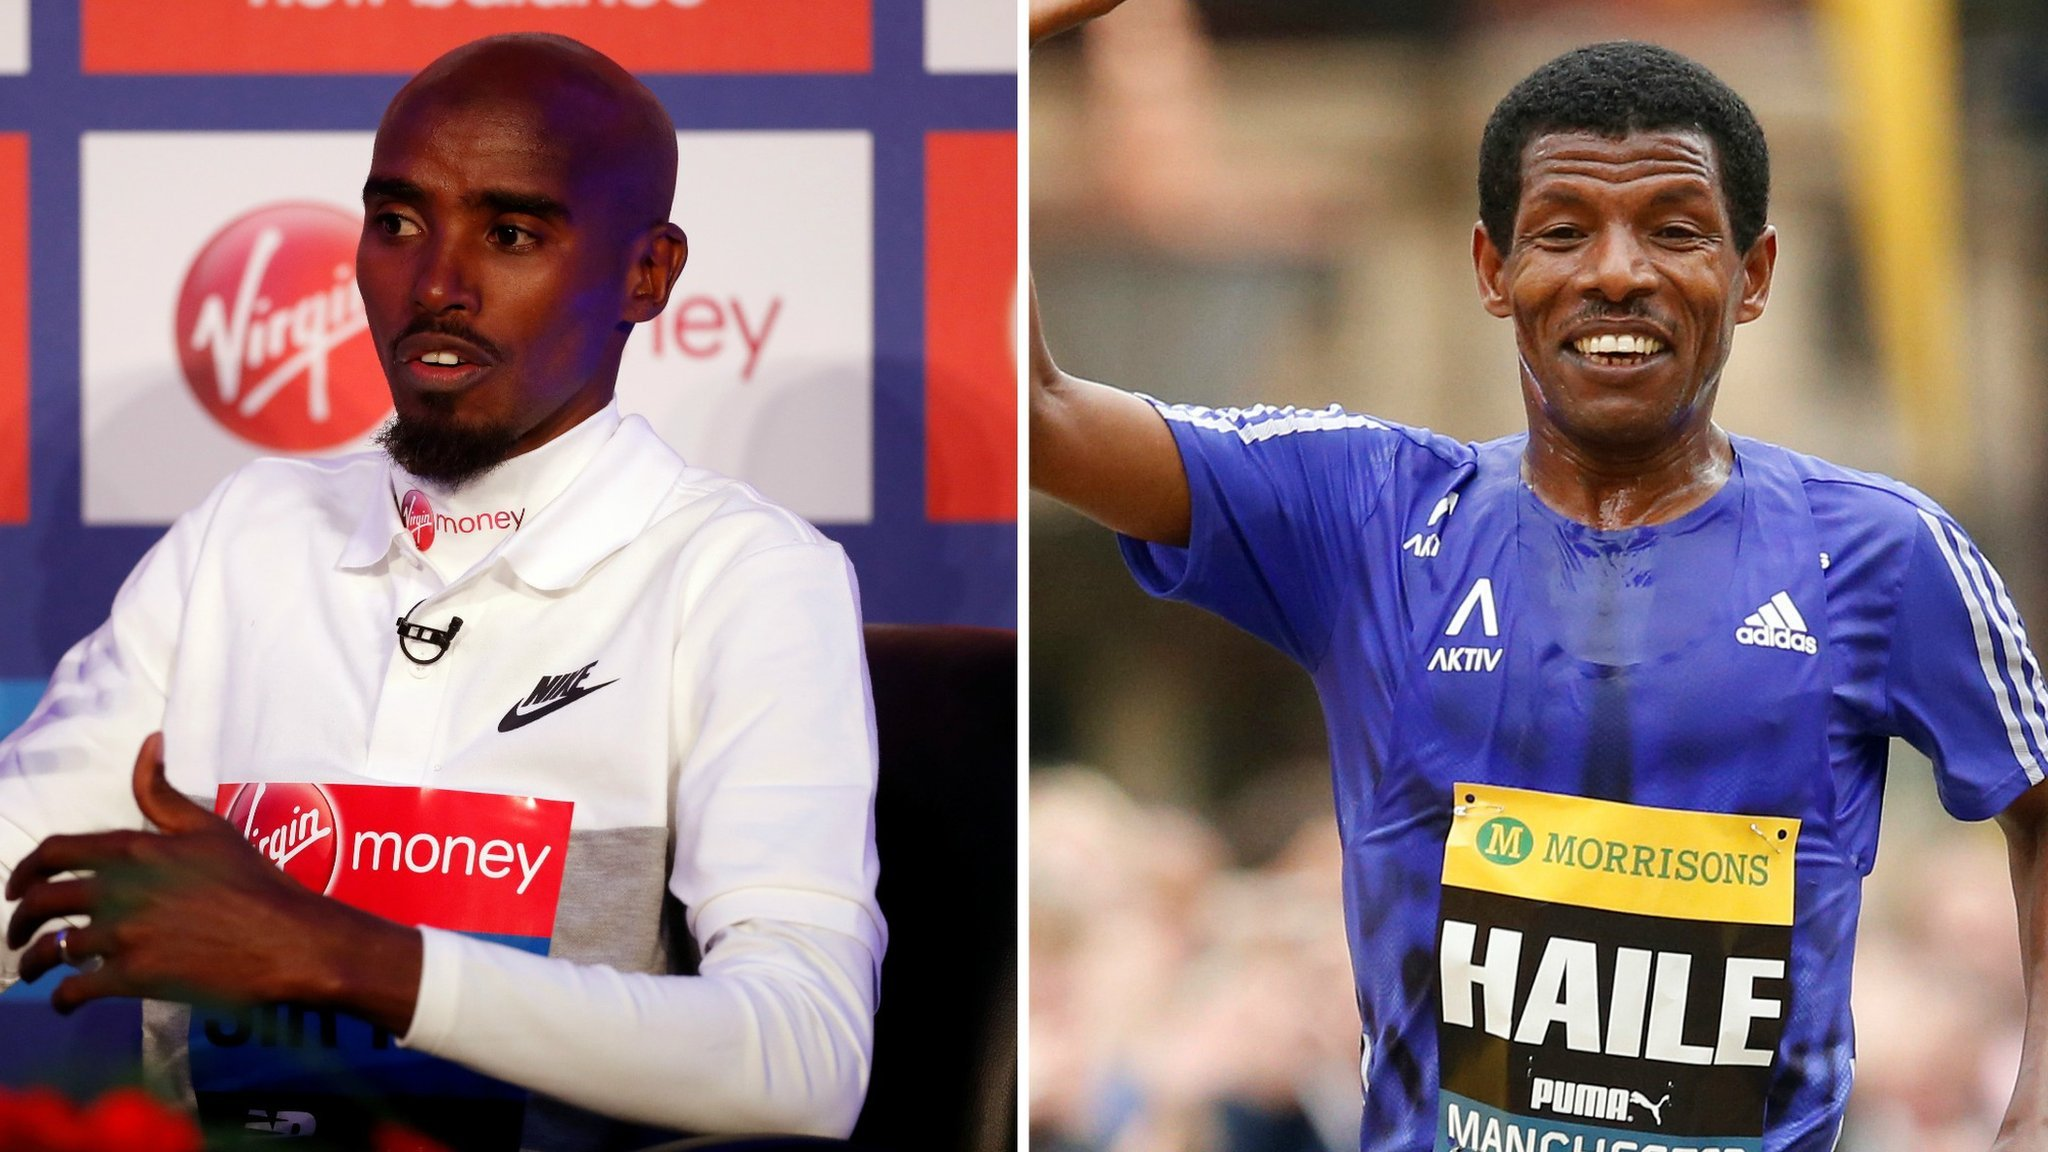 Mo Farah & Haile Gebrselassie in dispute over alleged theft